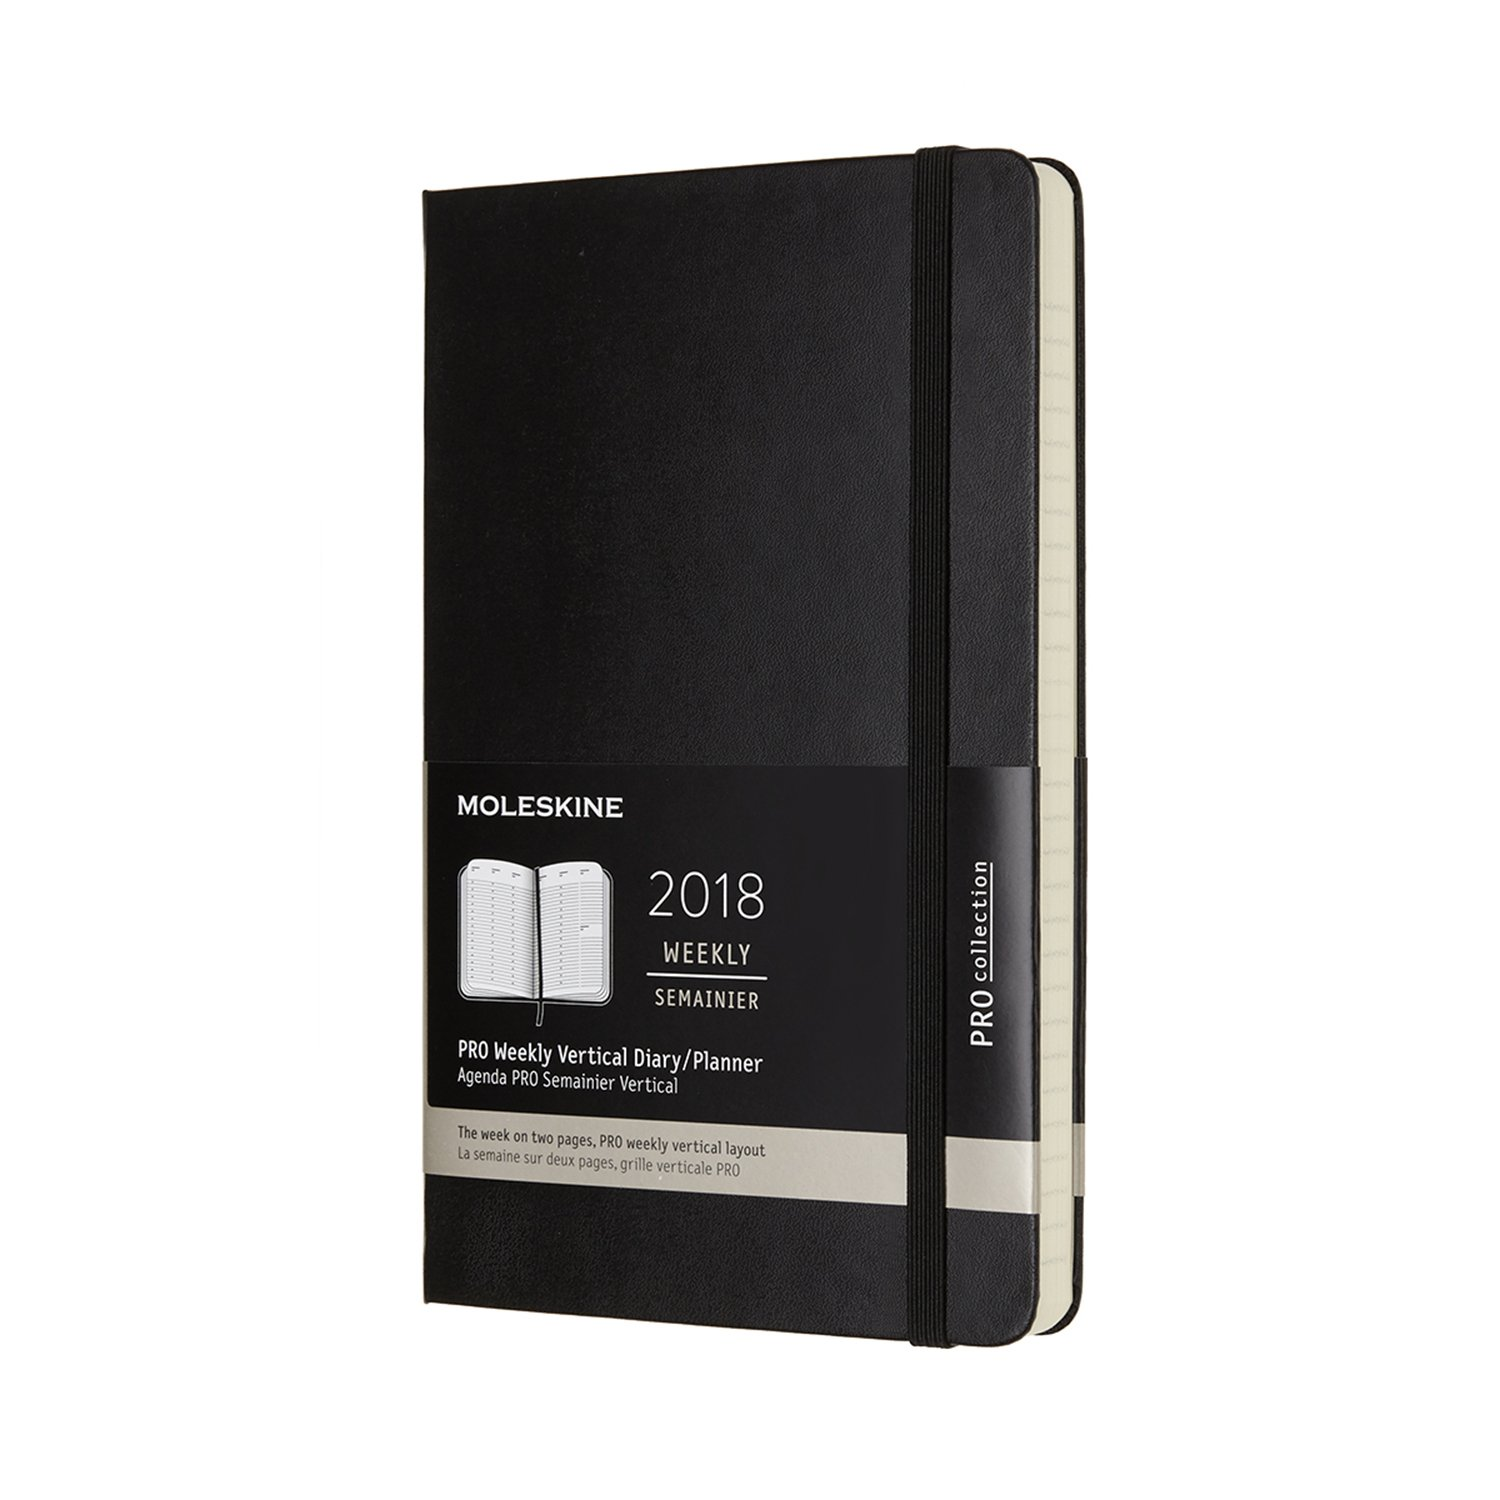 Moleskine 12 Month Pro Weekly Vertical Planner, Large, Black, Hard Cover (5 x 8.25)